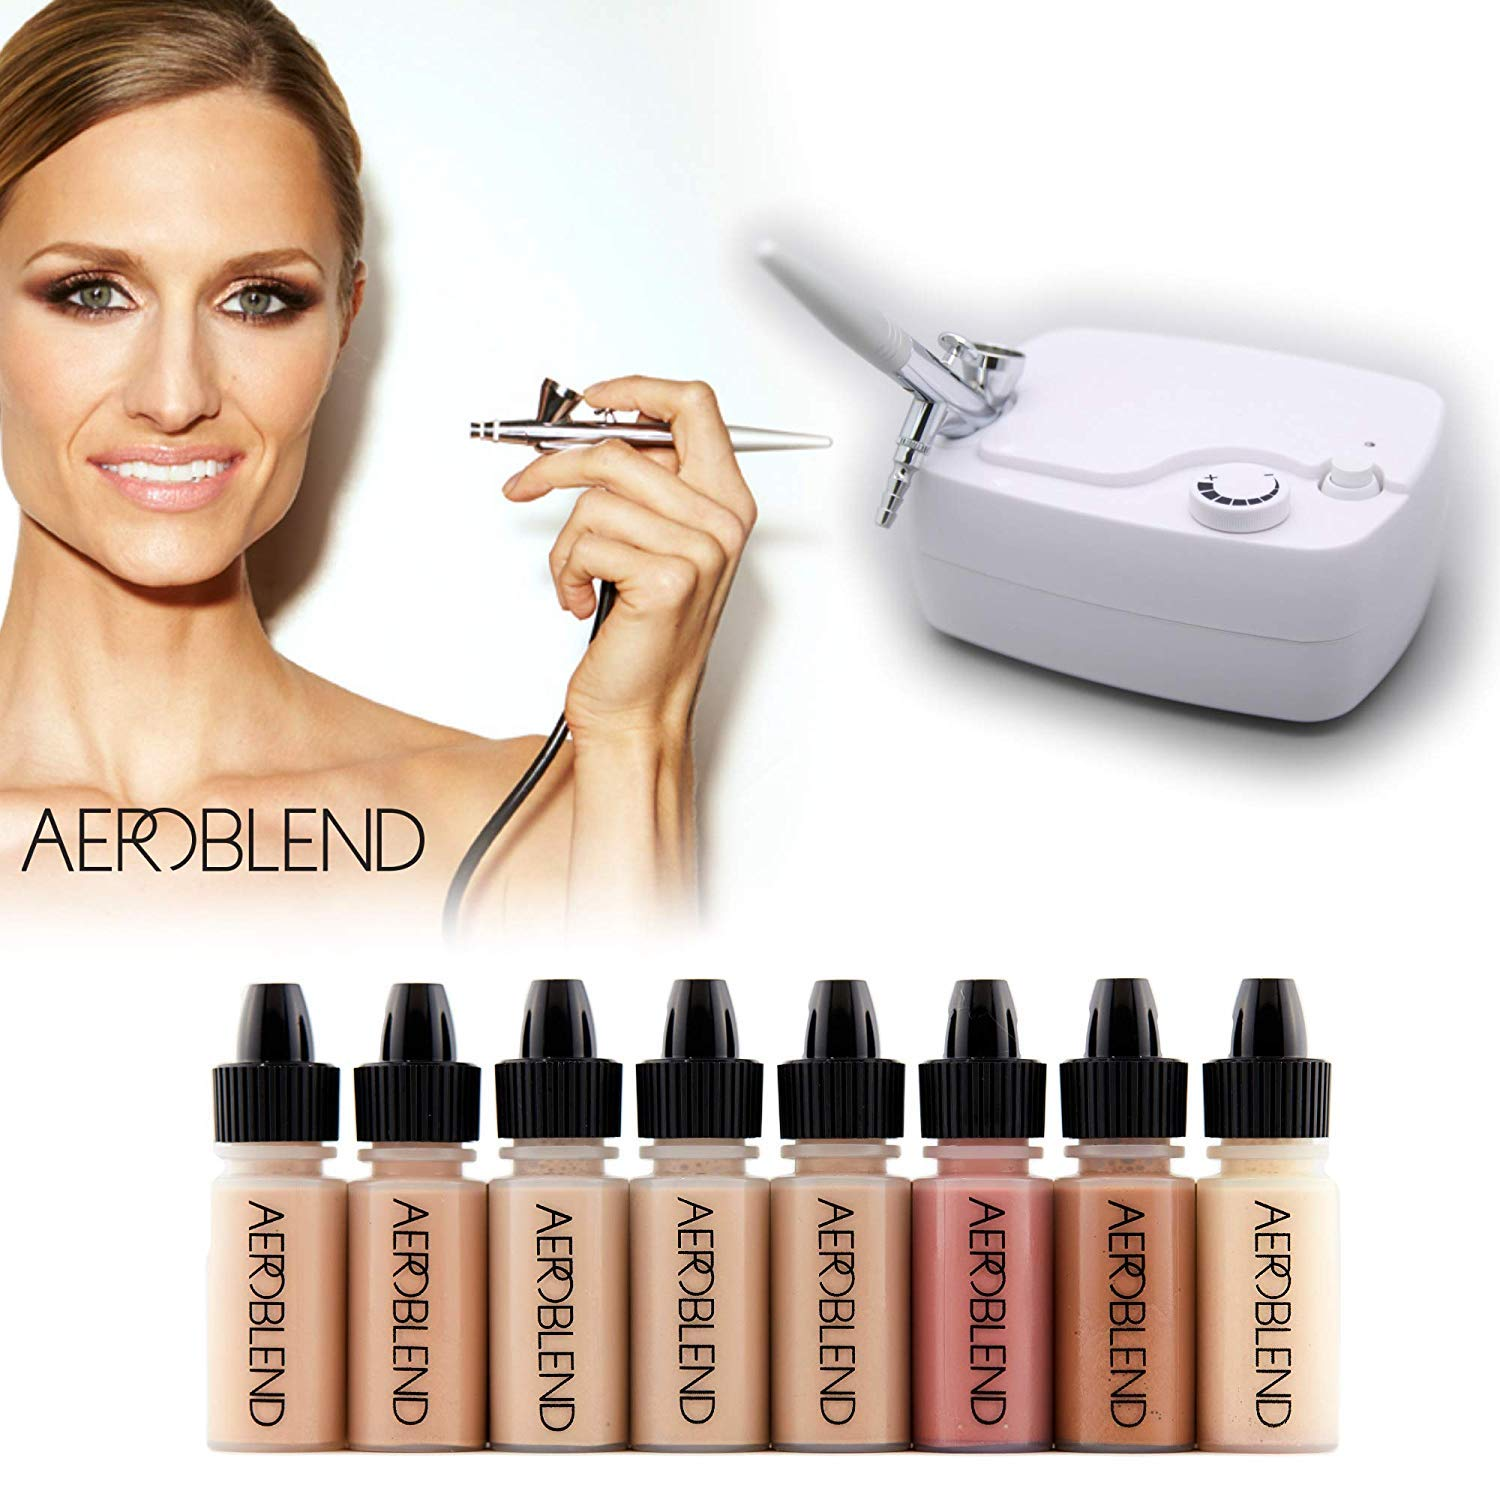 [Aeroblend] [エアブラシ化粧パーソナルスターターキット Airbrush Makeup Personal Starter Kit - Professional Cosmetic Airbrush Makeup System] (並行輸入品) B07RFGCV68